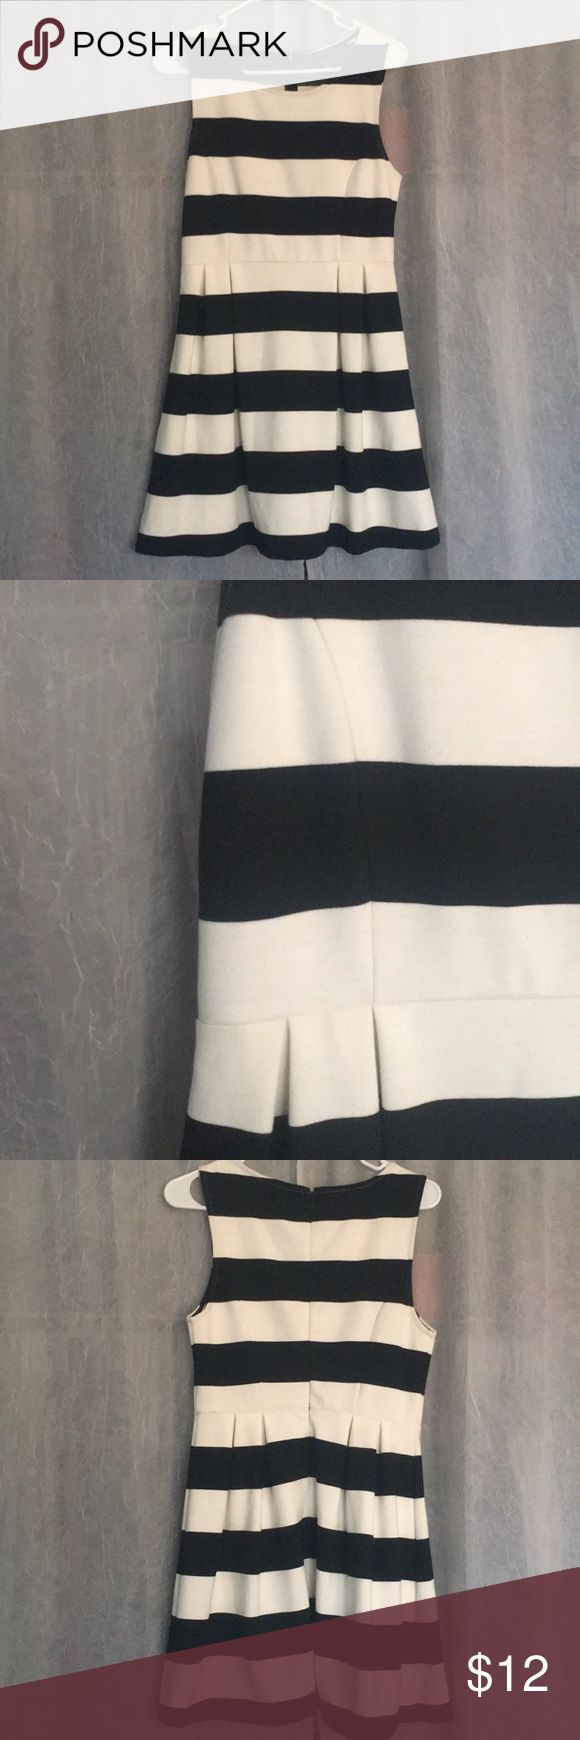 Striped dress Thick material black and white striped dress. Scoop front with semi hidden back zipper. Very flattering. Pleated style in front and back Forever 21 Dresses Mini